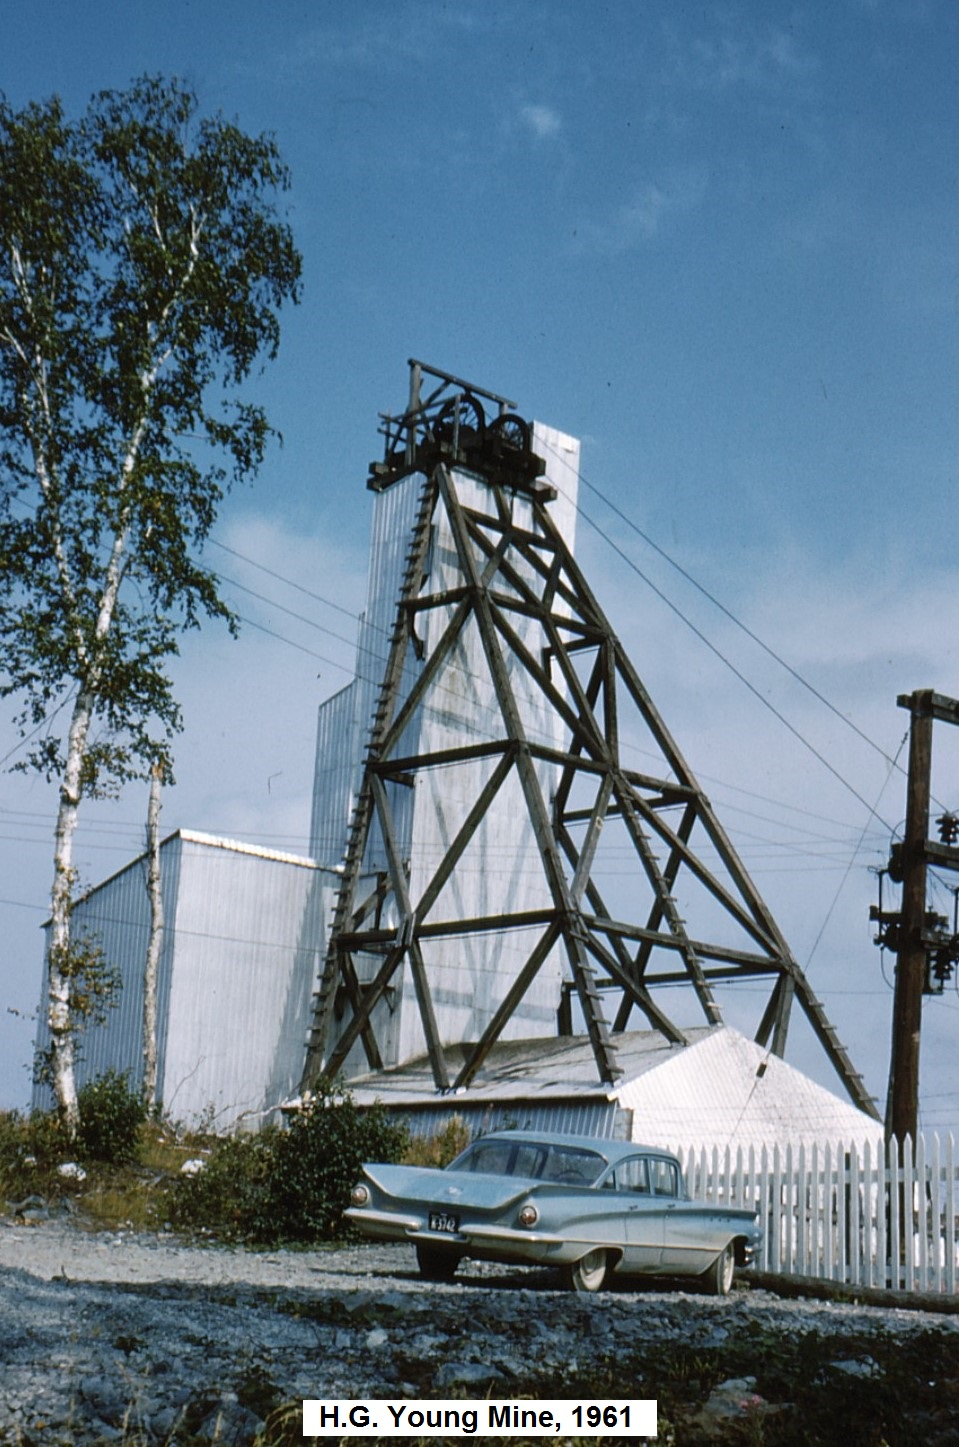 H.G. Young Mine, Red Lake District